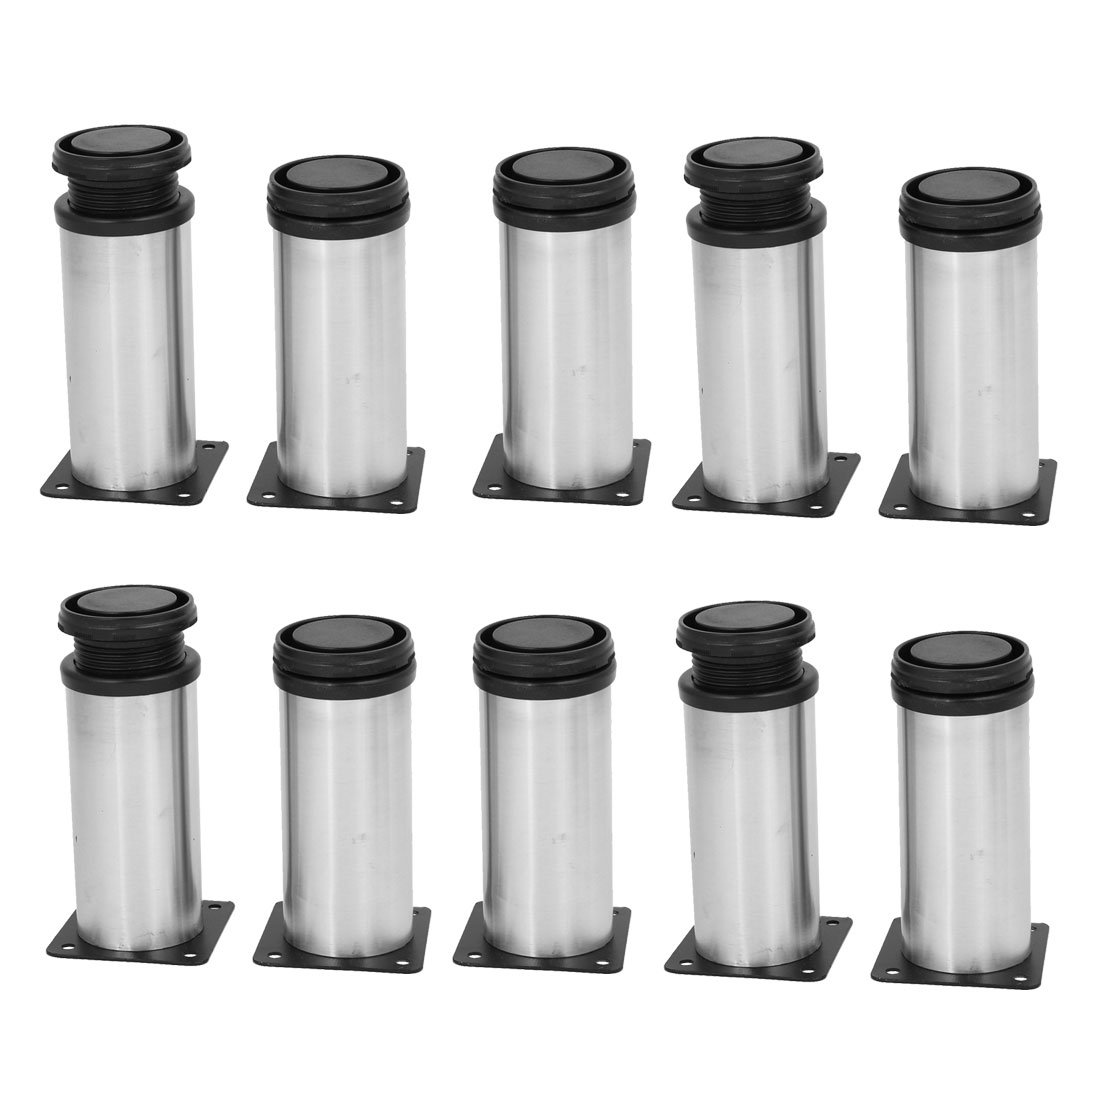 uxcell 50mm x 120mm Metal Adjustable Cabinet Sofa Feet Leg Round Stand 10PCS by uxcell (Image #1)